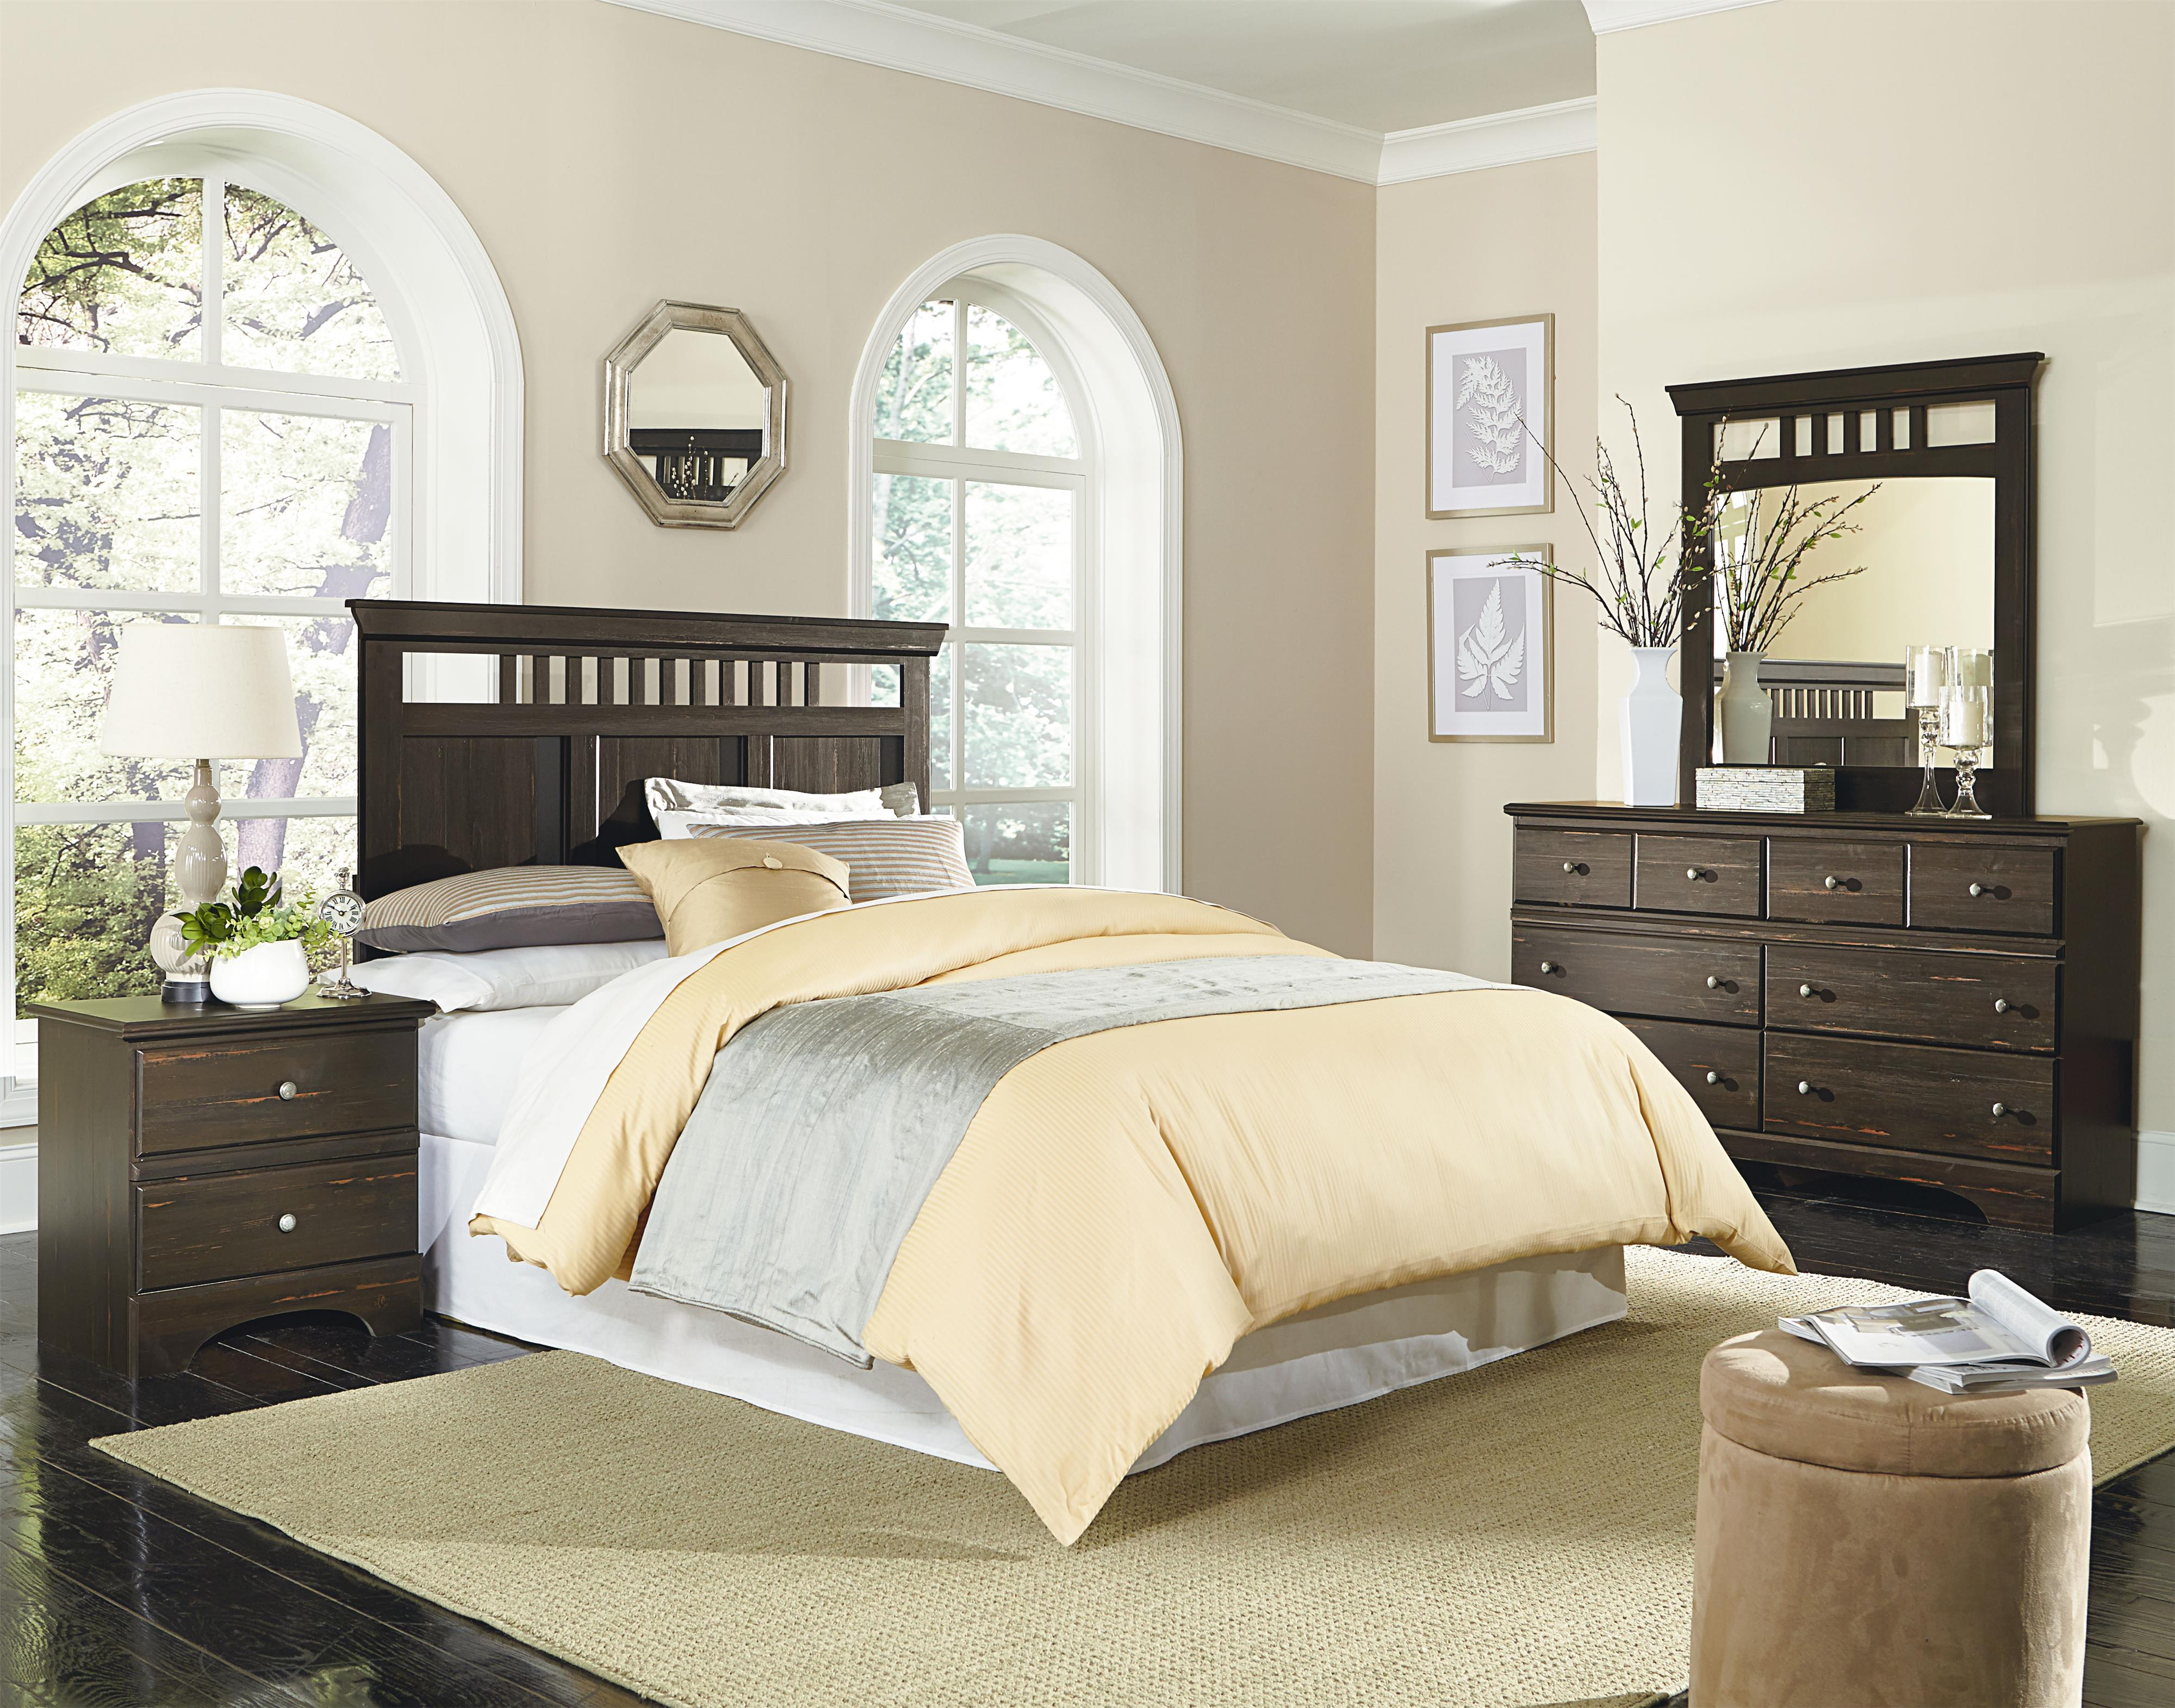 Standard Furniture Hampton Twin Bedroom Group - Item Number: 52050 T Bedroom Group 2